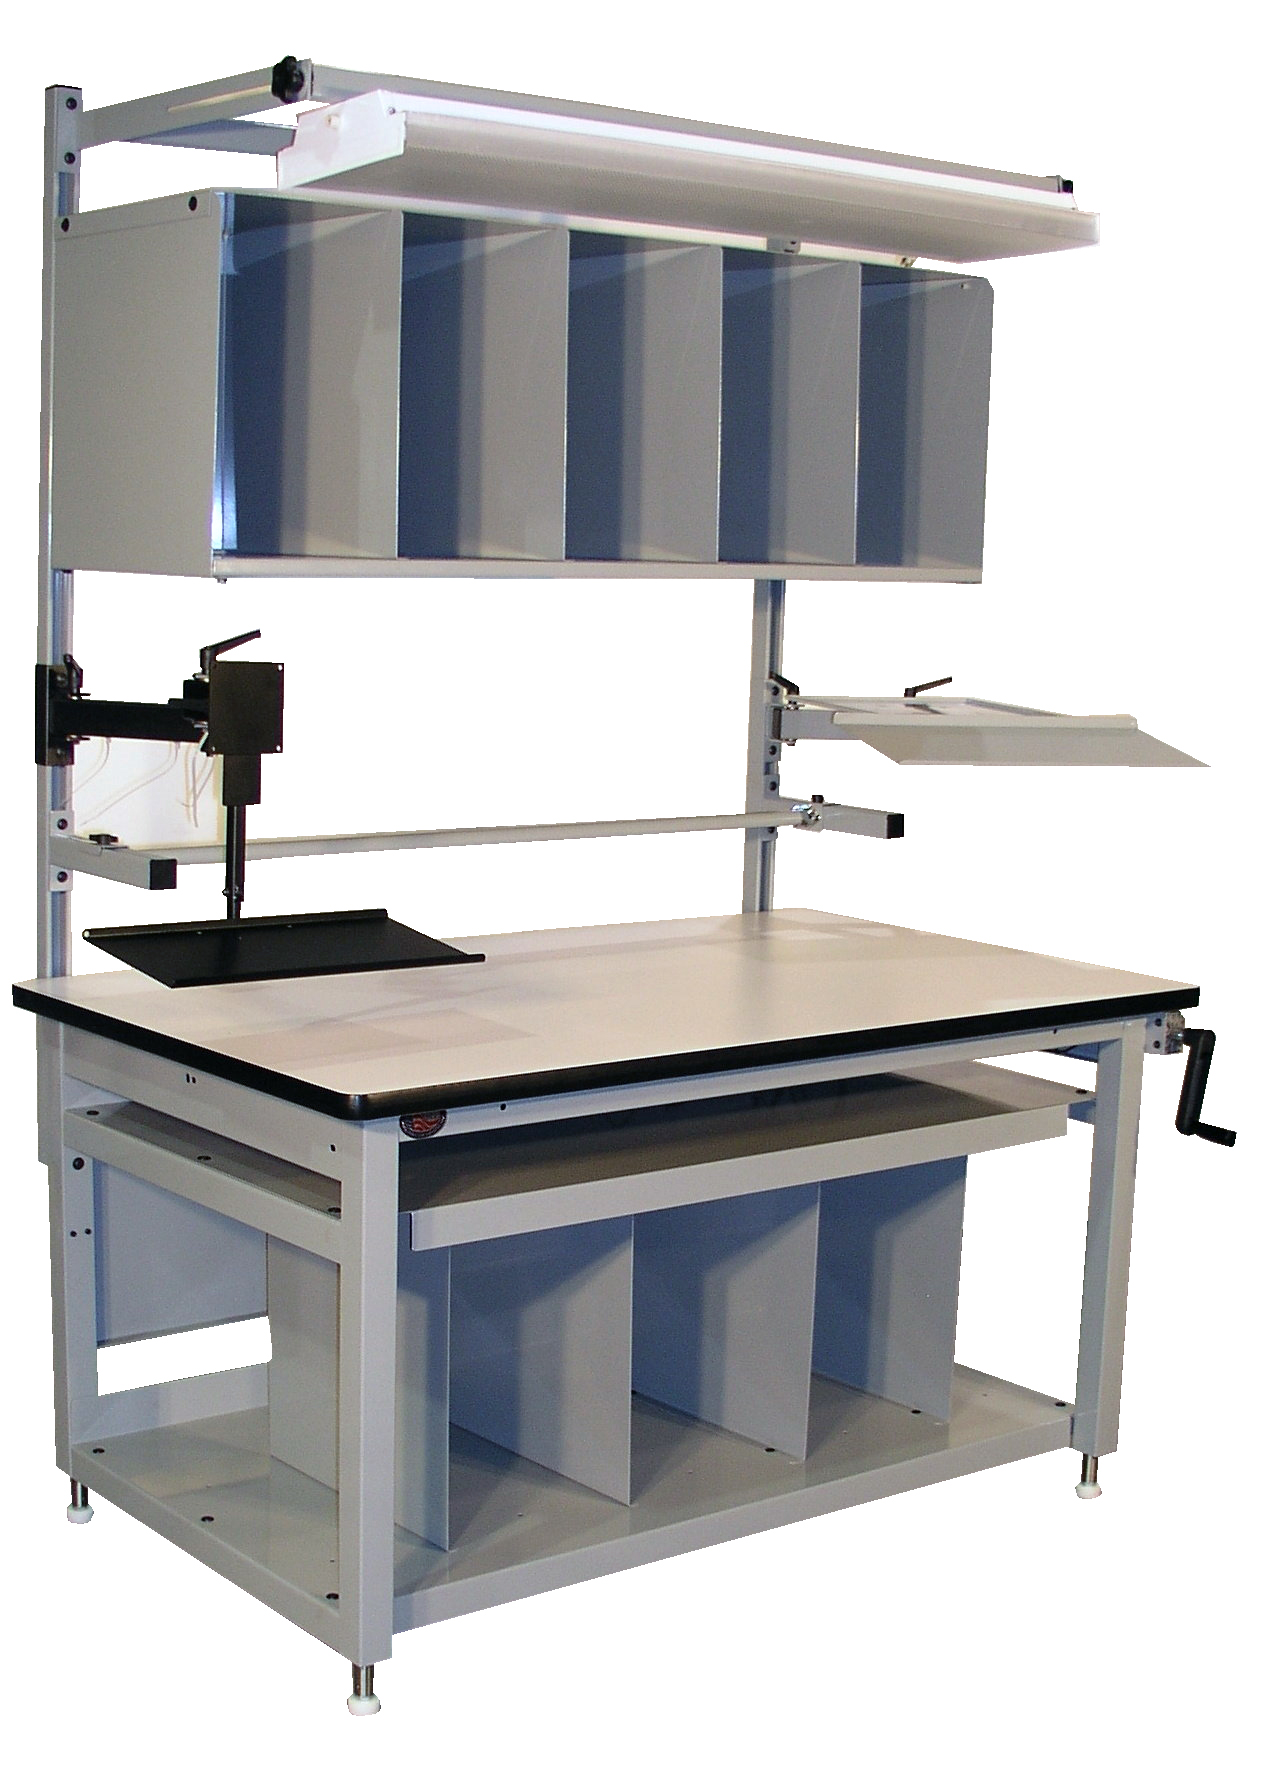 Workbenches Idea File Past Orders Wire Harness Tables Heavy Duty Ergoline For Packaging Application